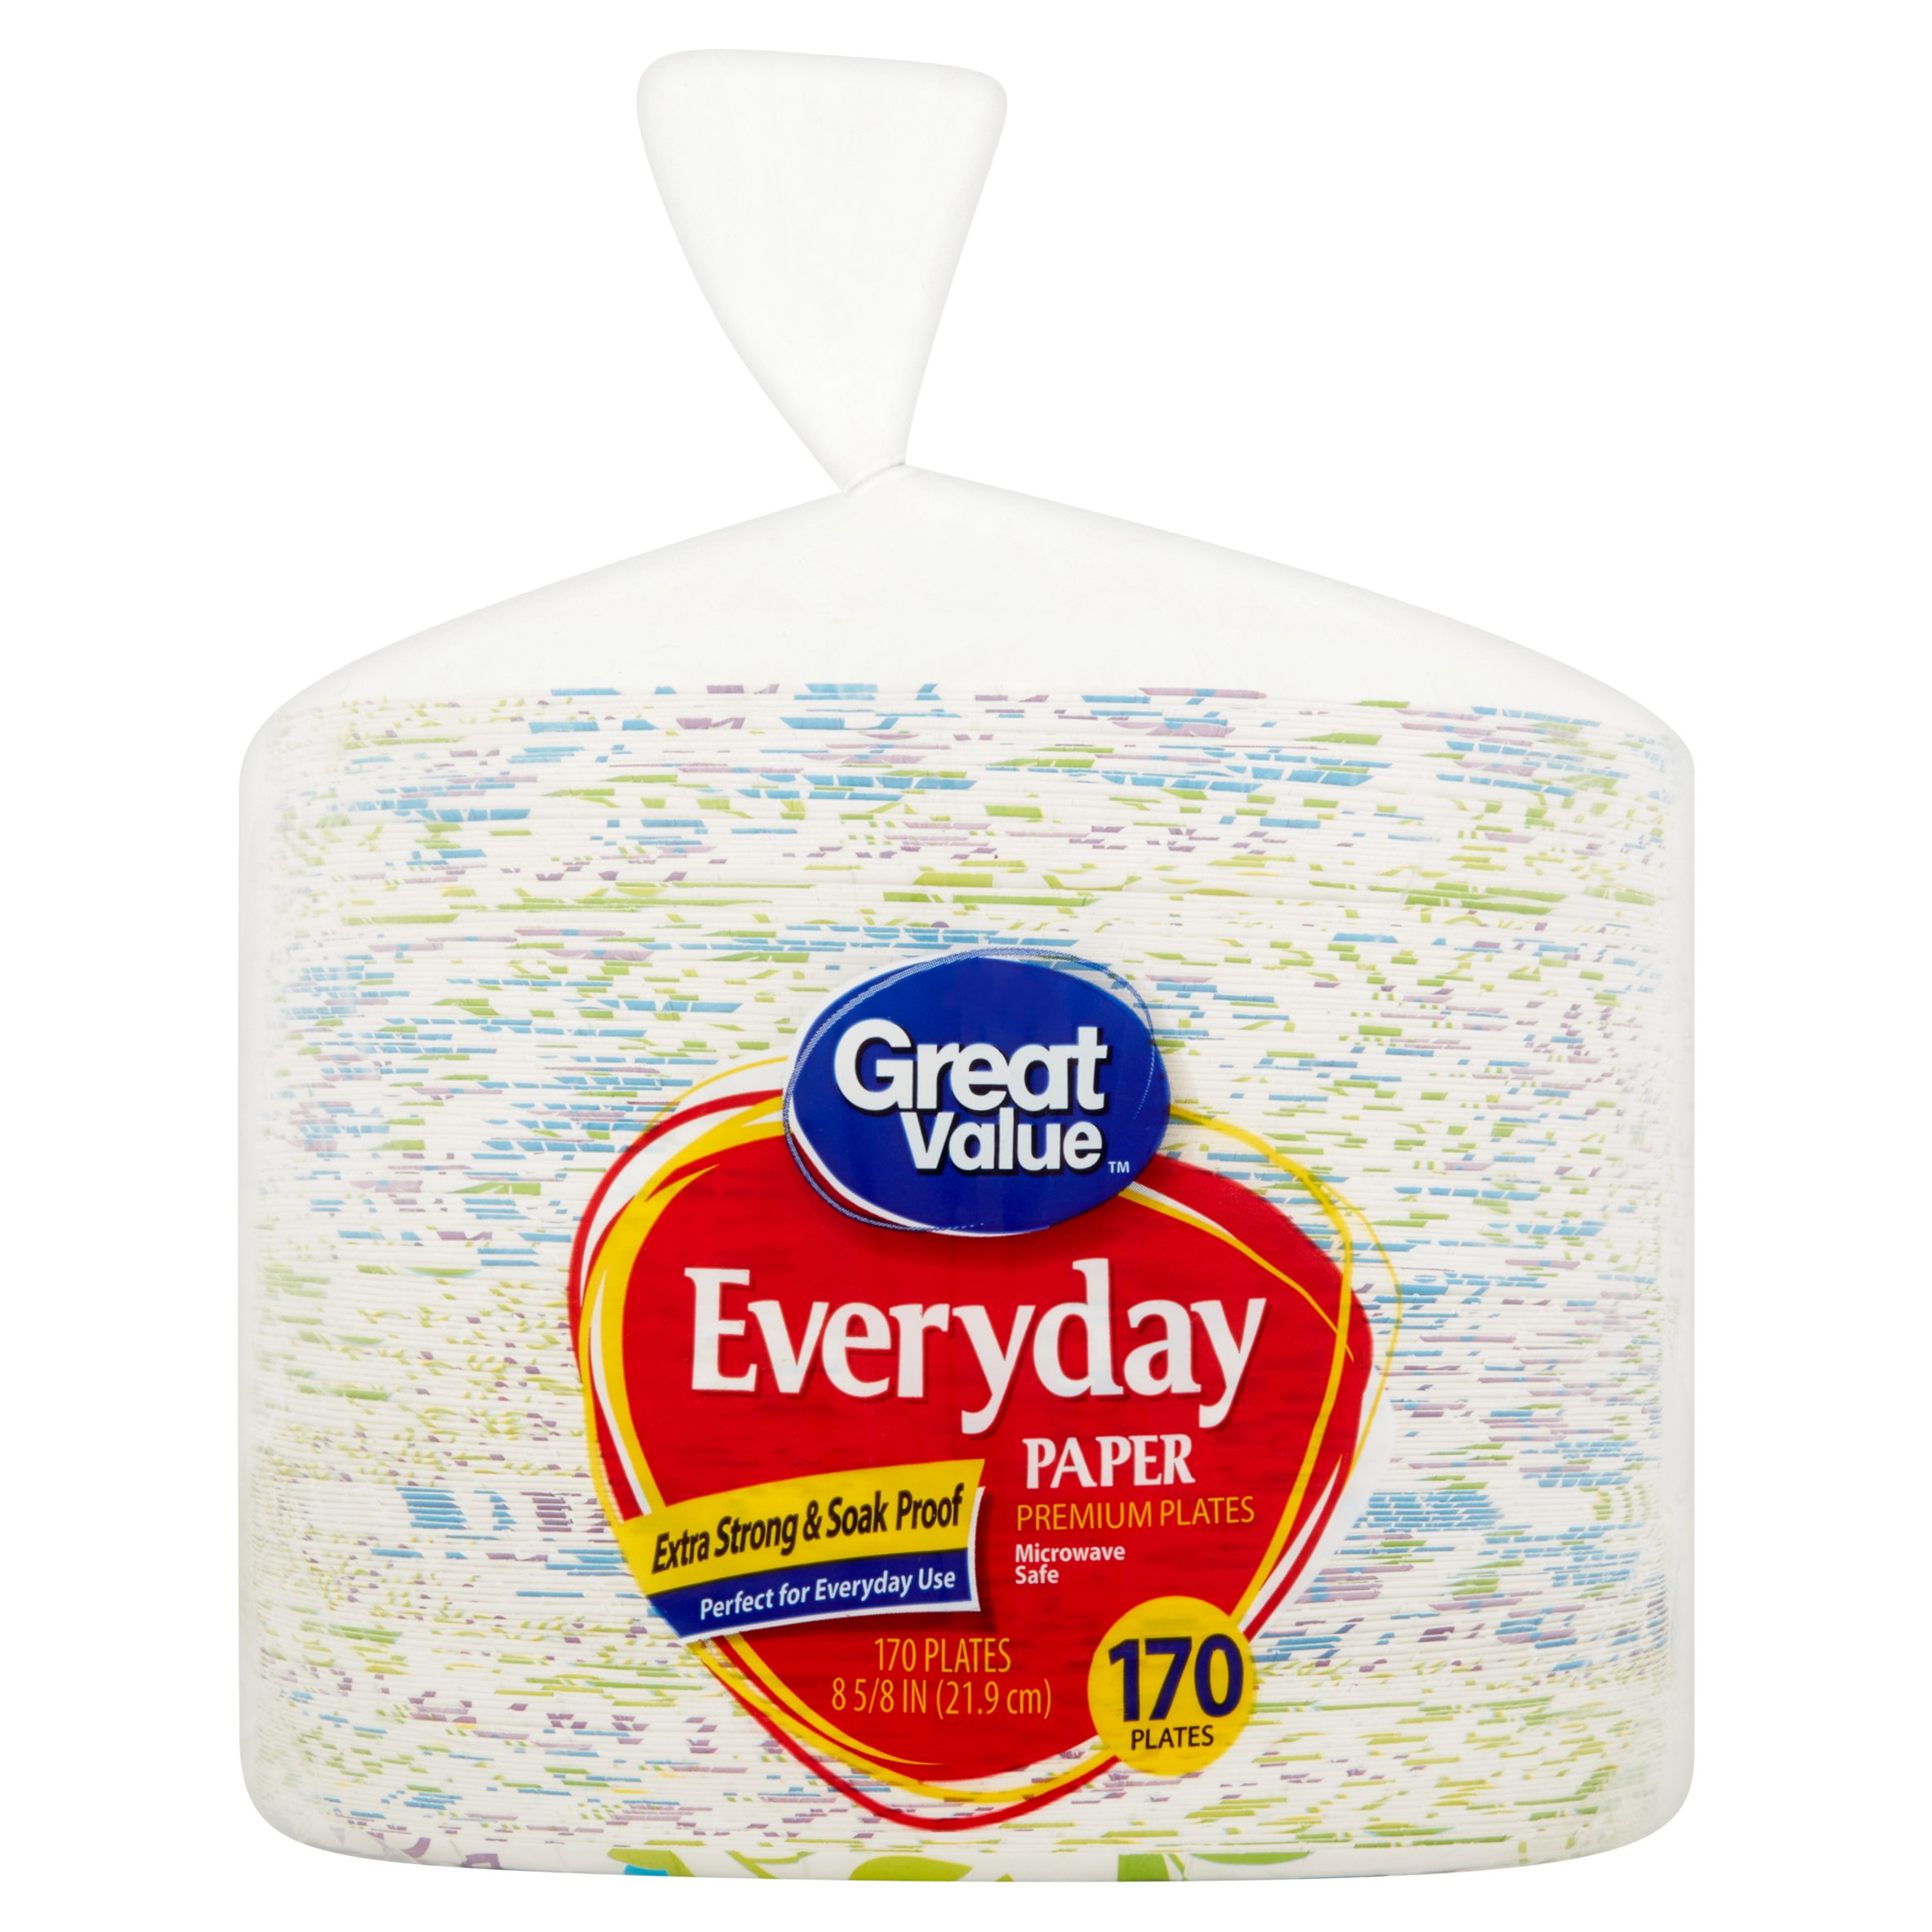 Great Value Everyday Paper Premium Plates, 8 5 8\ by Wal-Mart Stores, Inc.